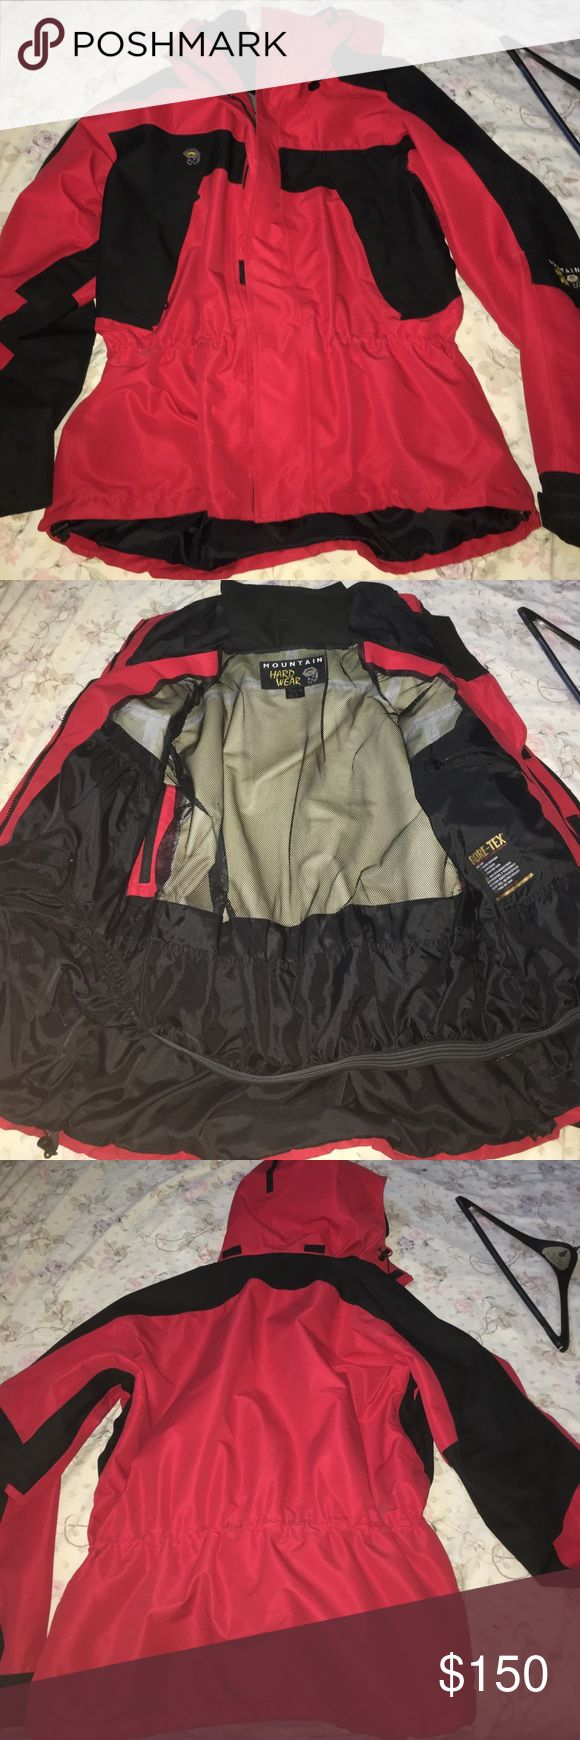 Mountain Hard Wear Heavy Duty Hiking Jacket Size XL in absolute perfect condition. Perfect for any hiker. Super durable and great brand. Worn minimal times. Mountain Hardwear Jackets & Coats Utility Jackets